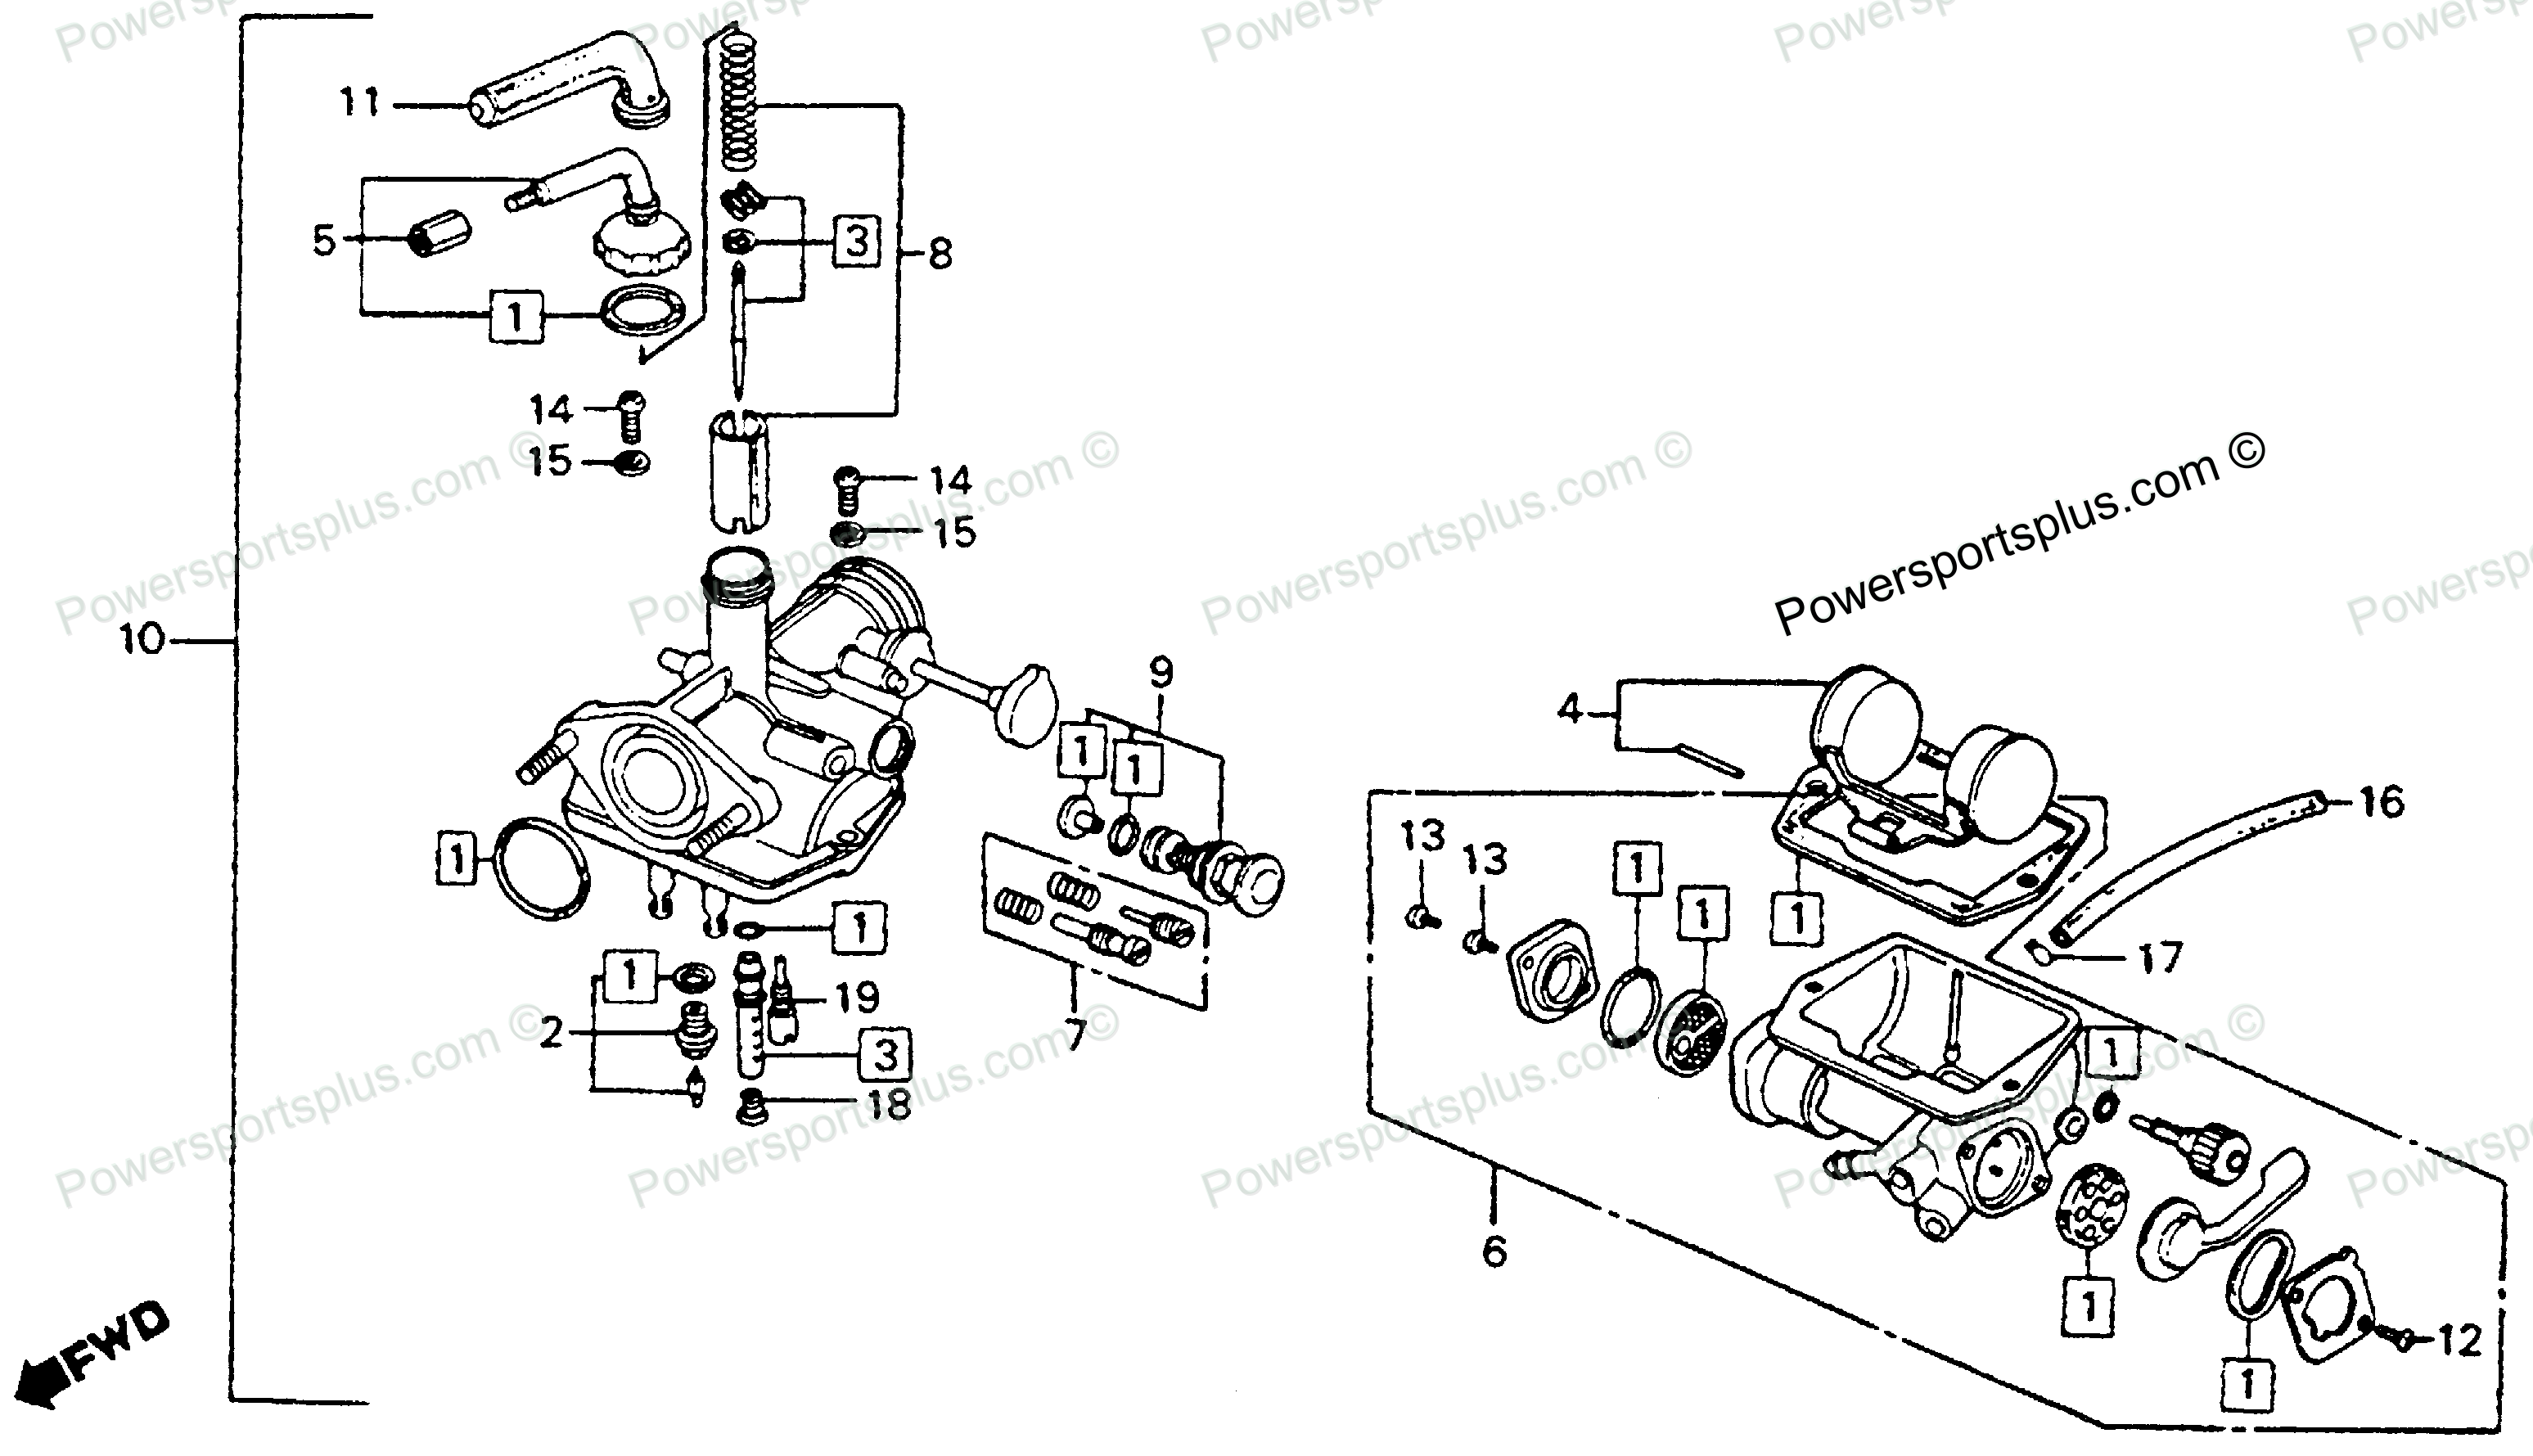 hight resolution of diagram of honda motorcycle parts 1976 ct90 a carburetor k6 77 diagram honda motorcycle parts